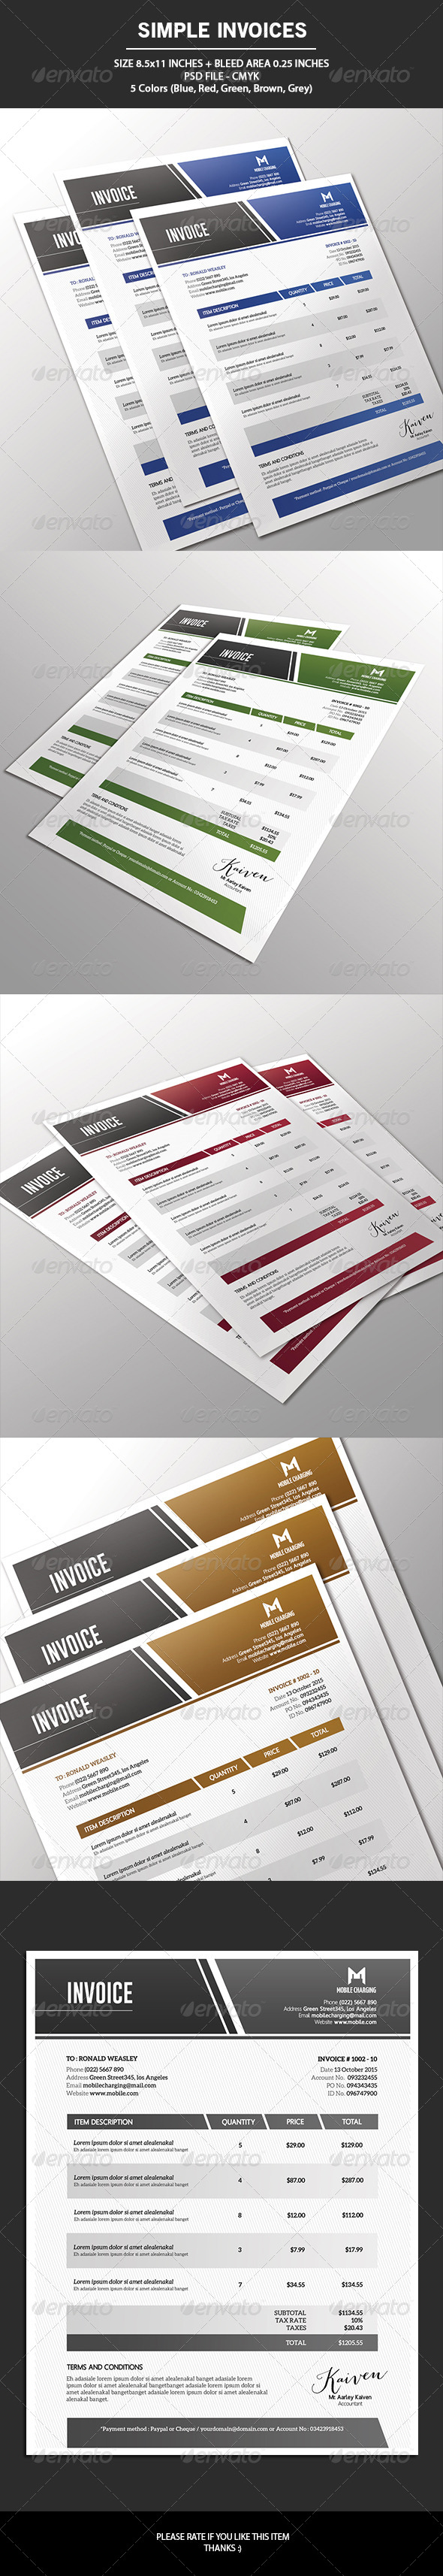 Simple Invoices - Proposals & Invoices Stationery